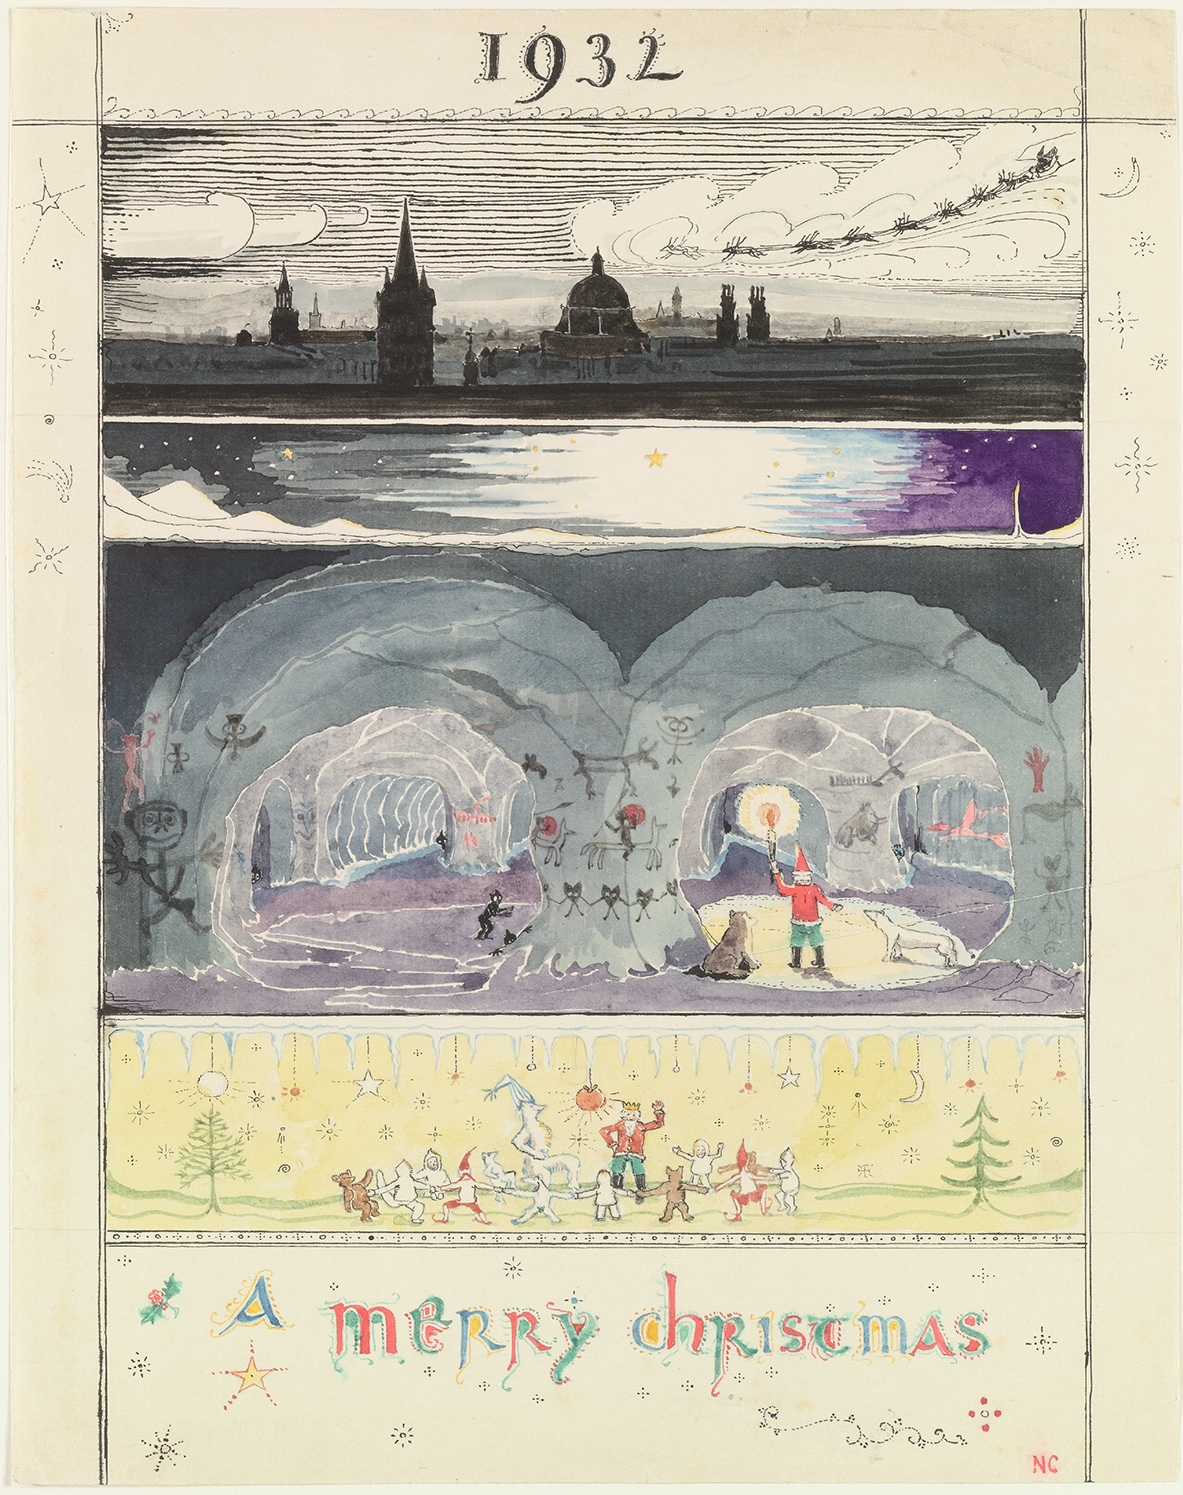 Christmas, 1932: 'The caves are wonderful. I knew they were there, but not how many or how big they were. Of course the goblins went off into the deepest holes and corners, and we soon found Polar Bear. He was getting quite long and thin with hunger, as he had been in the caves about a fortnight … At the top of my 'Christmas card' is a picture, imaginary, but more or less as it really is, of me arriving over Oxford. Your house is just about where the three little black points stick up out of the shadow at the right.' (Copyright The Tolkien Estate Ltd, 1976.)